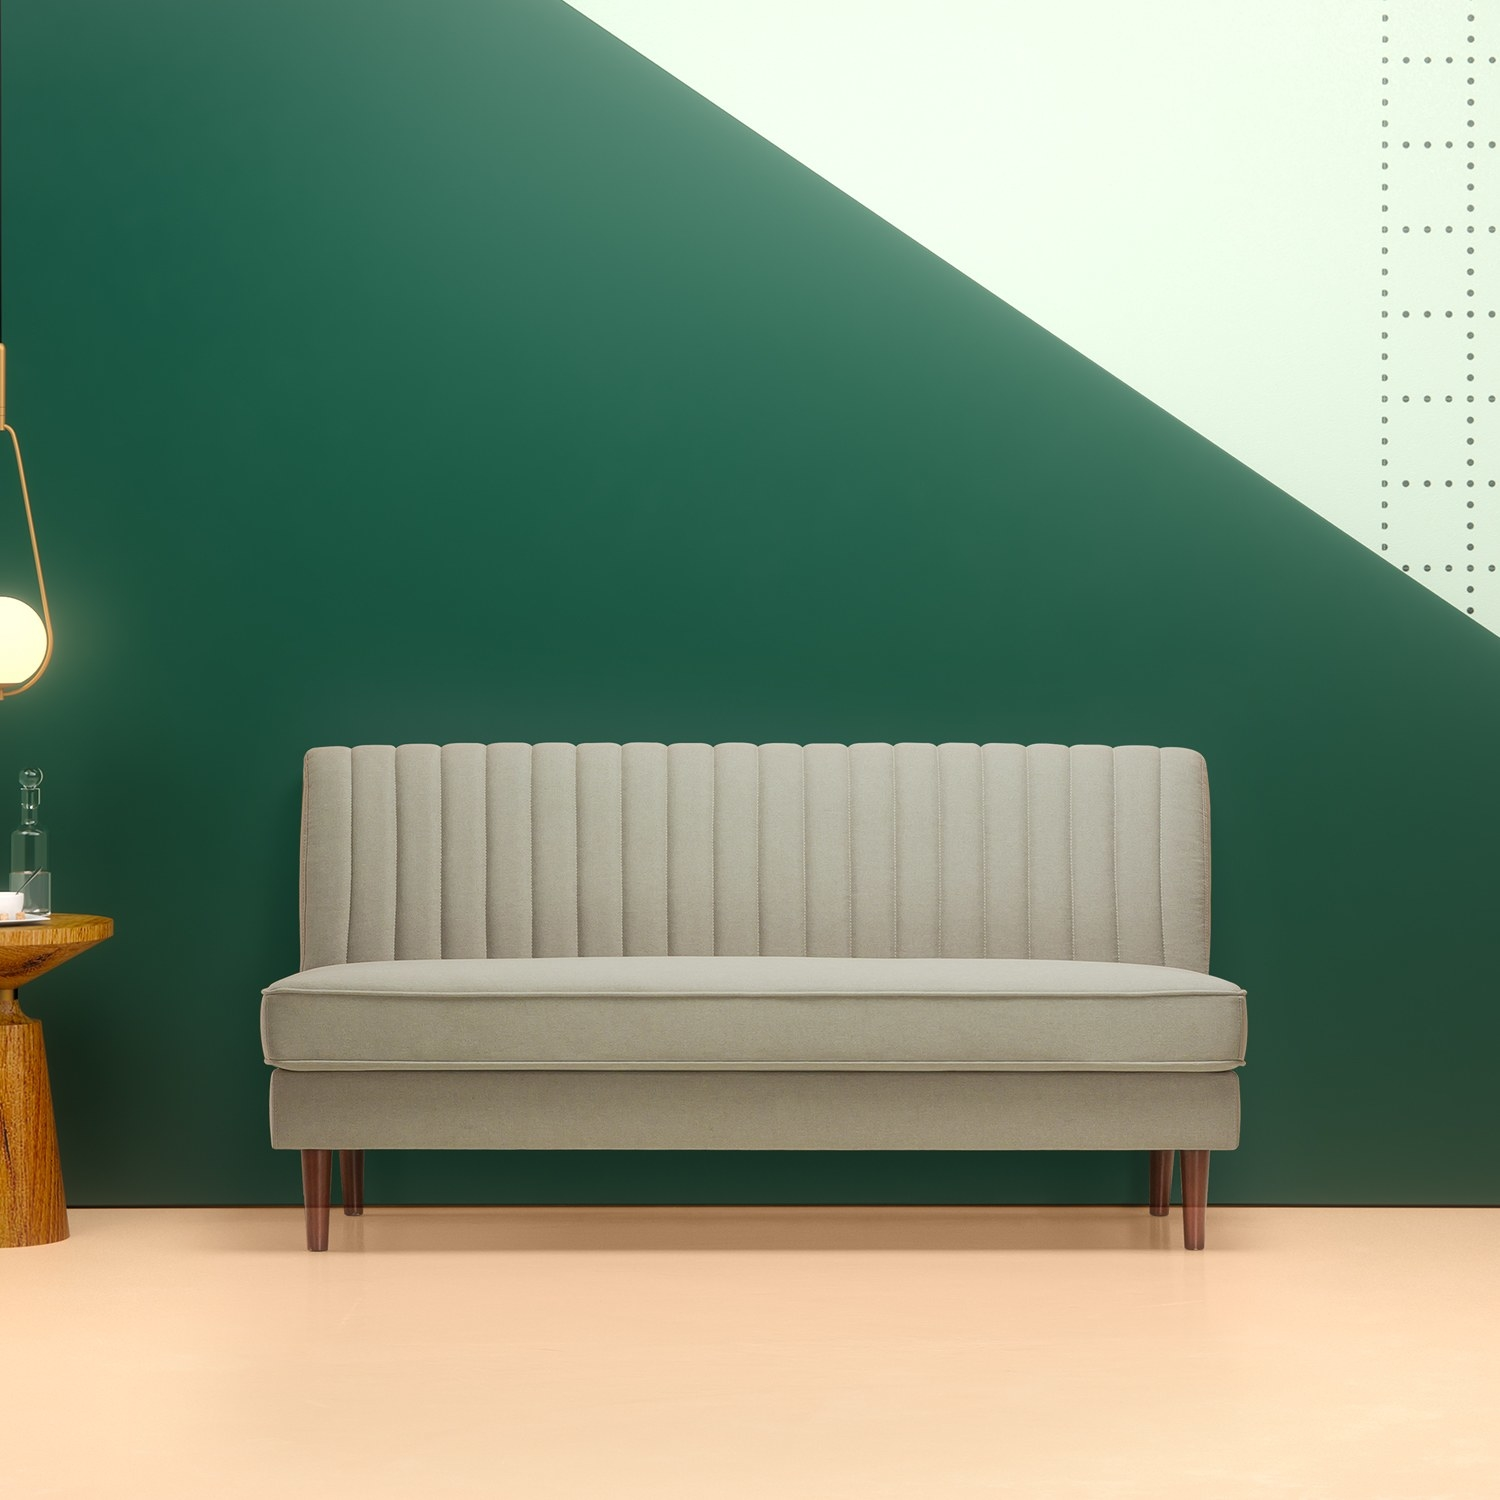 The armless beige sofa with dark wooden legs and a vertical line pattern on the back cushion